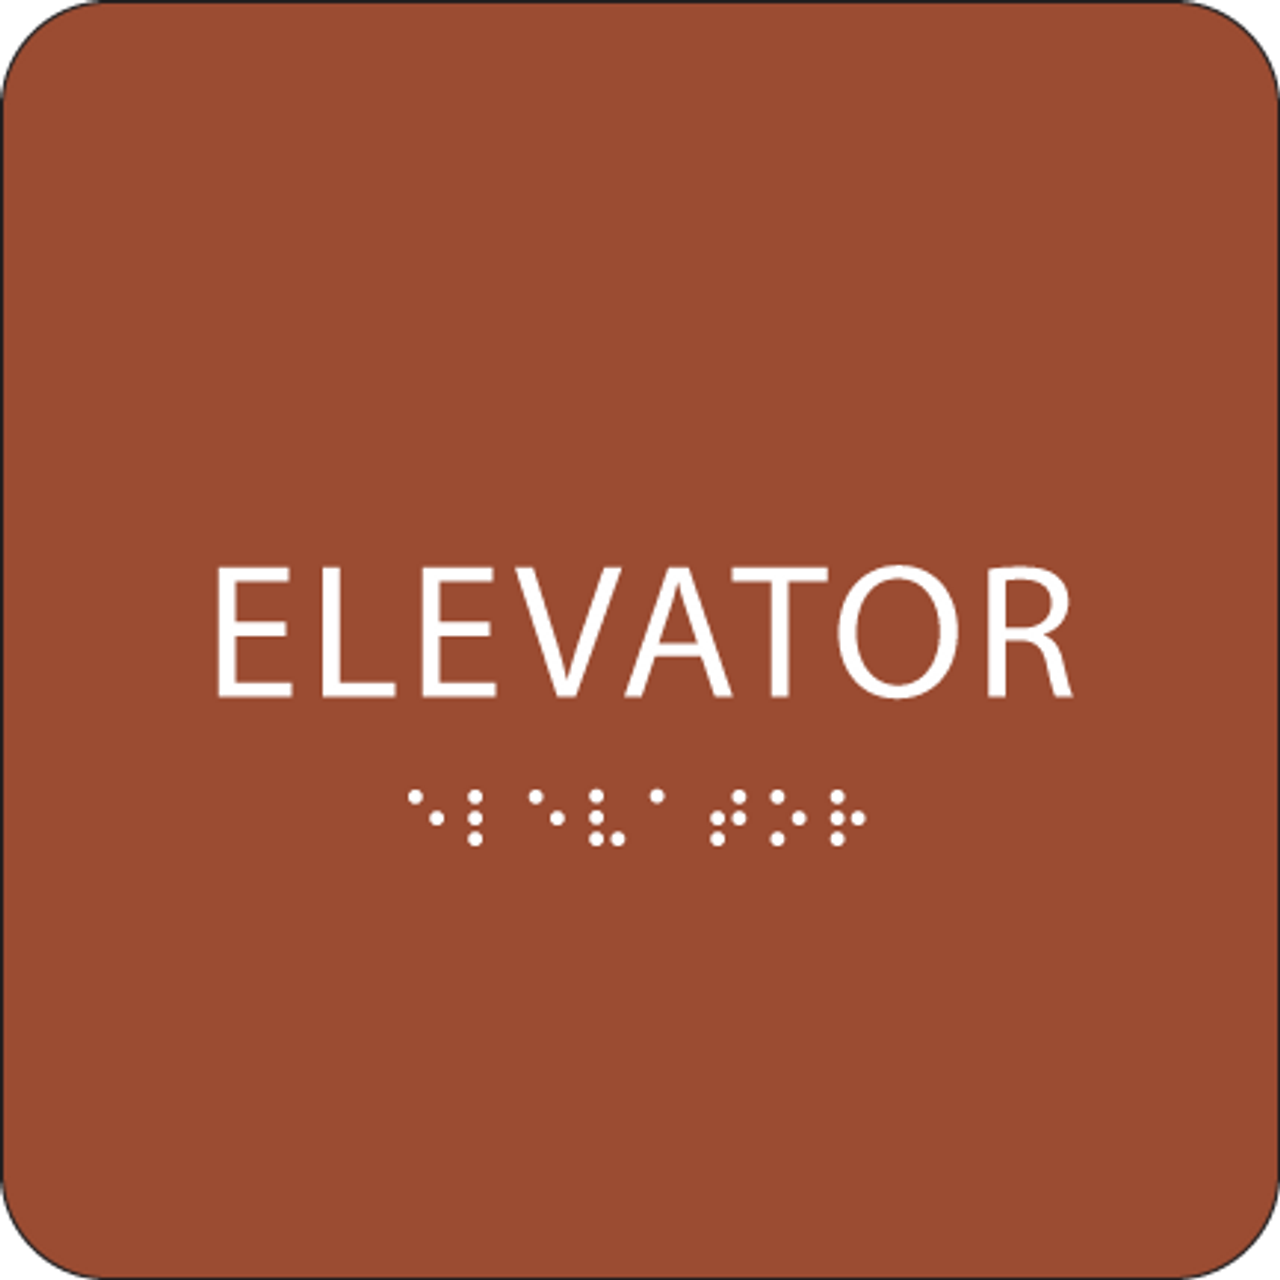 Orange ADA Elevator Sign